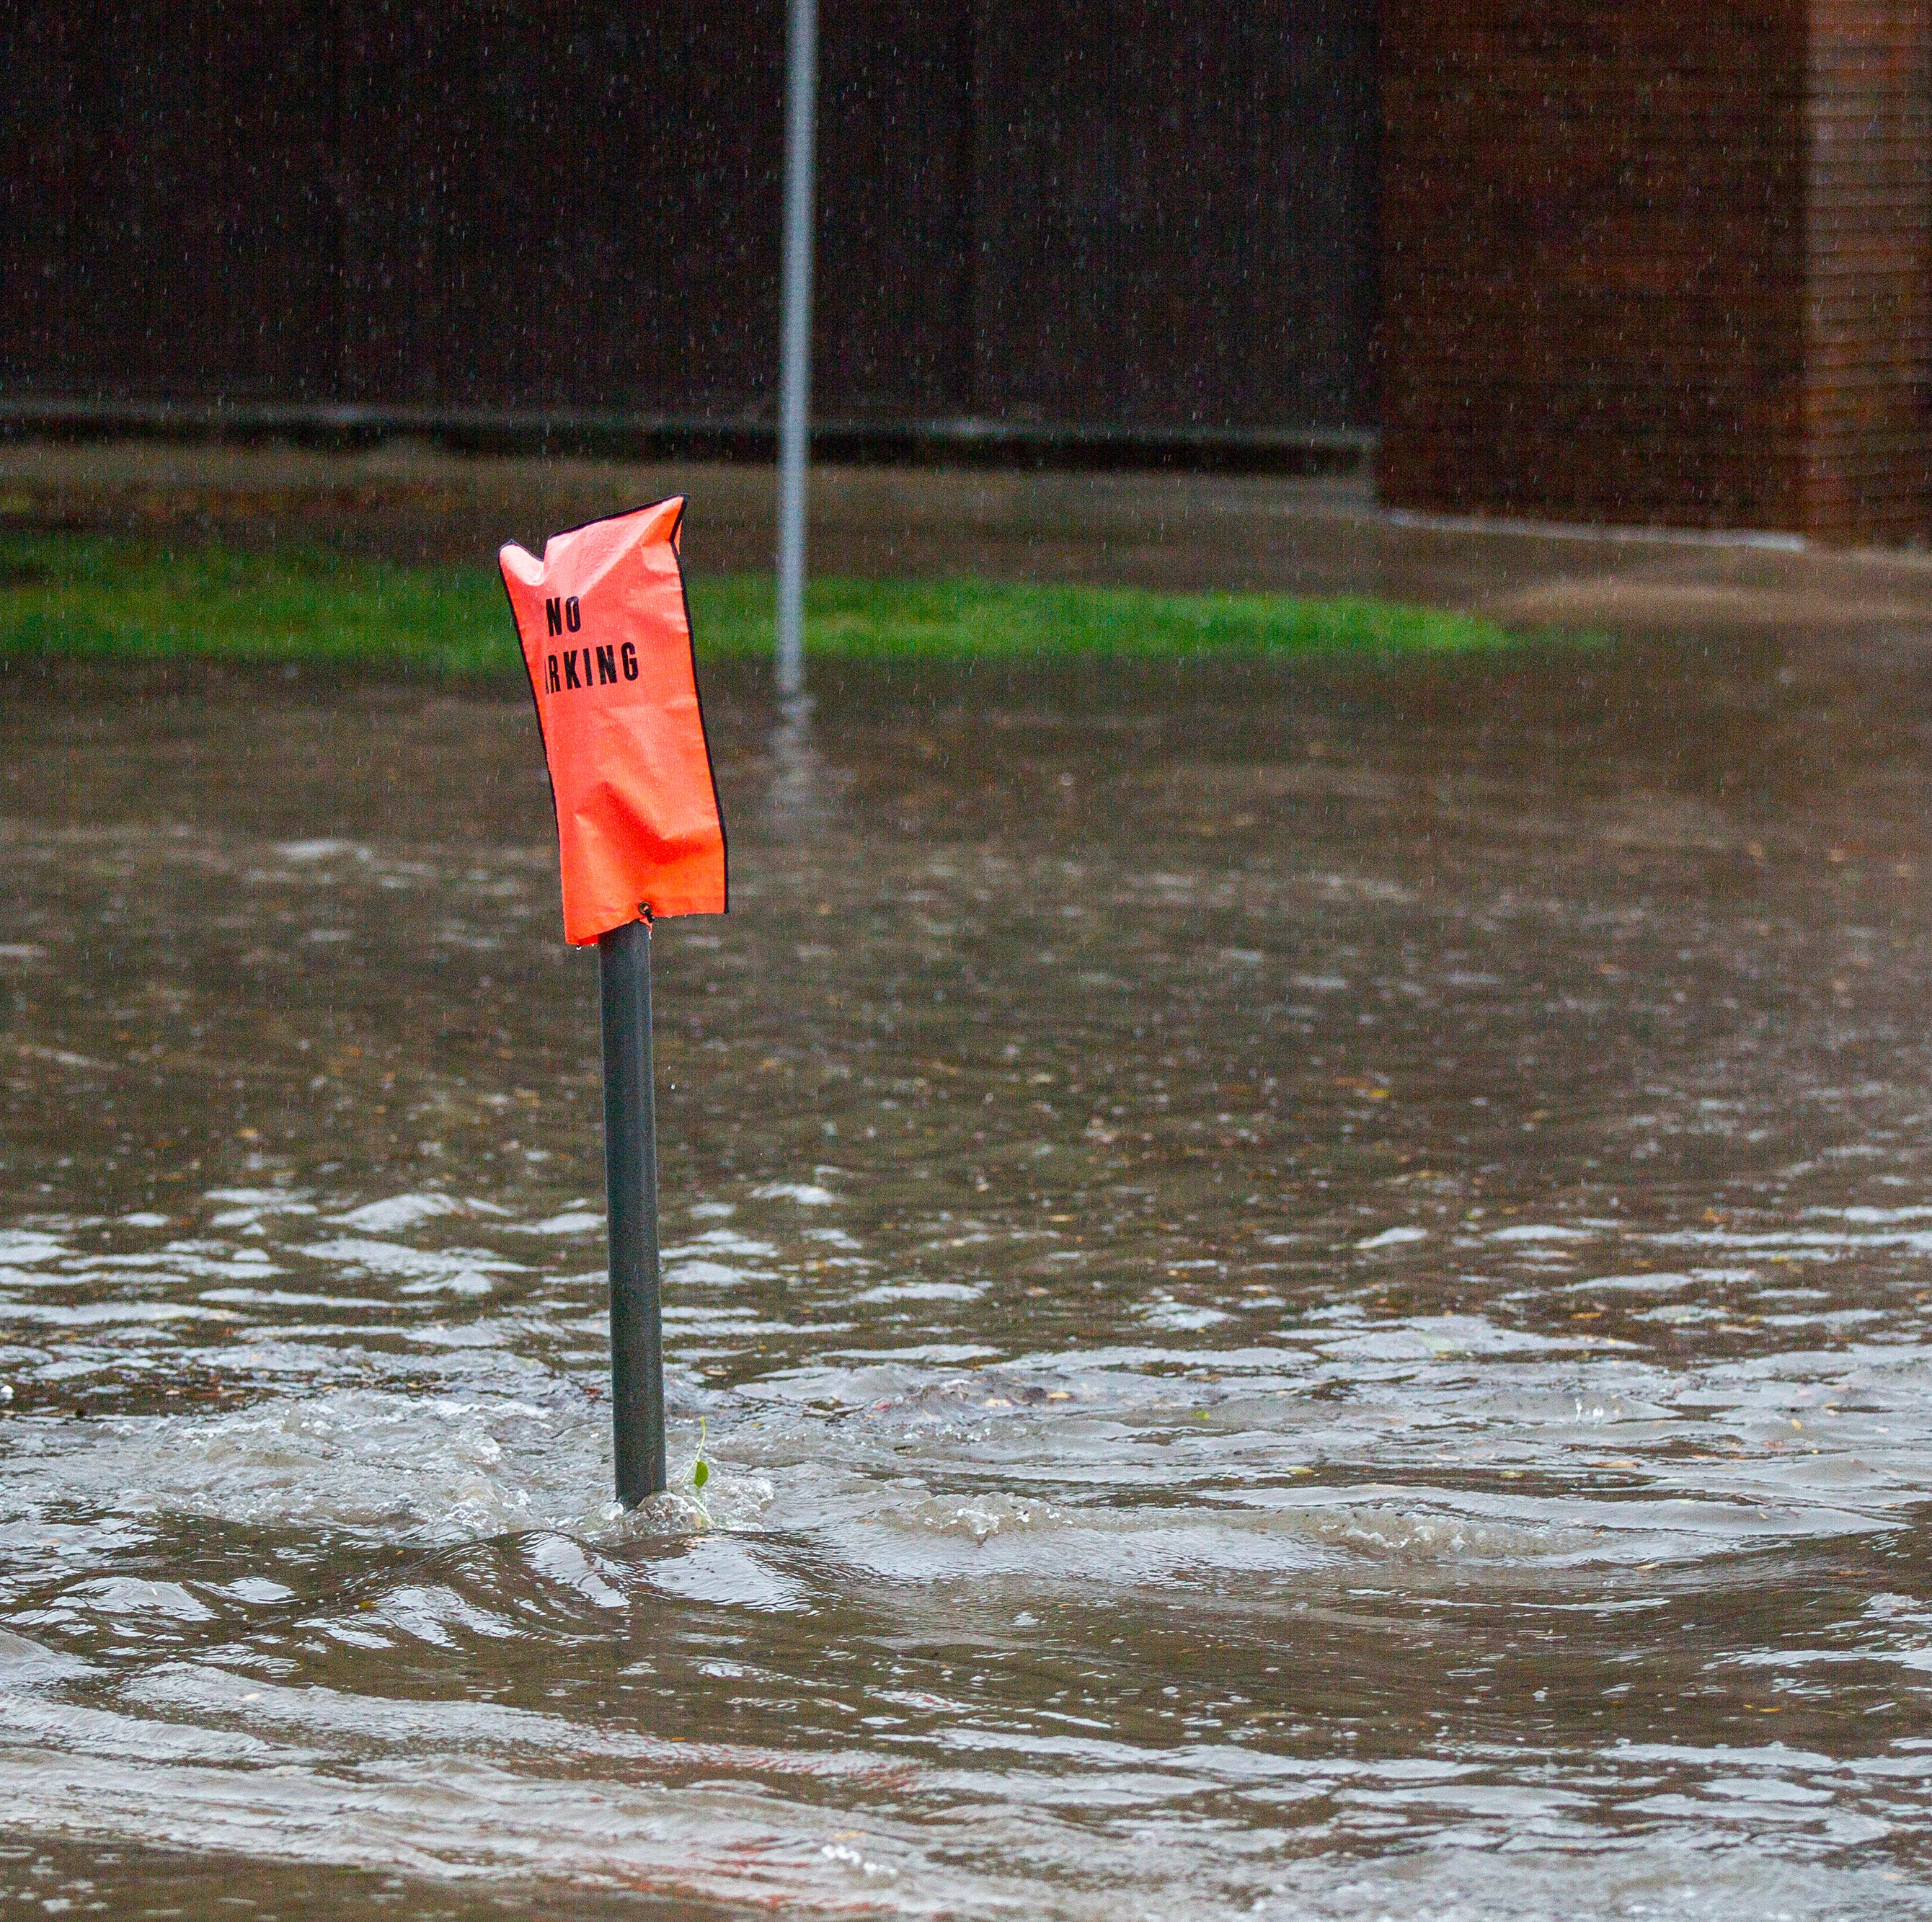 Iowa City area under flood watch as heavy rain, snow melt forecasted